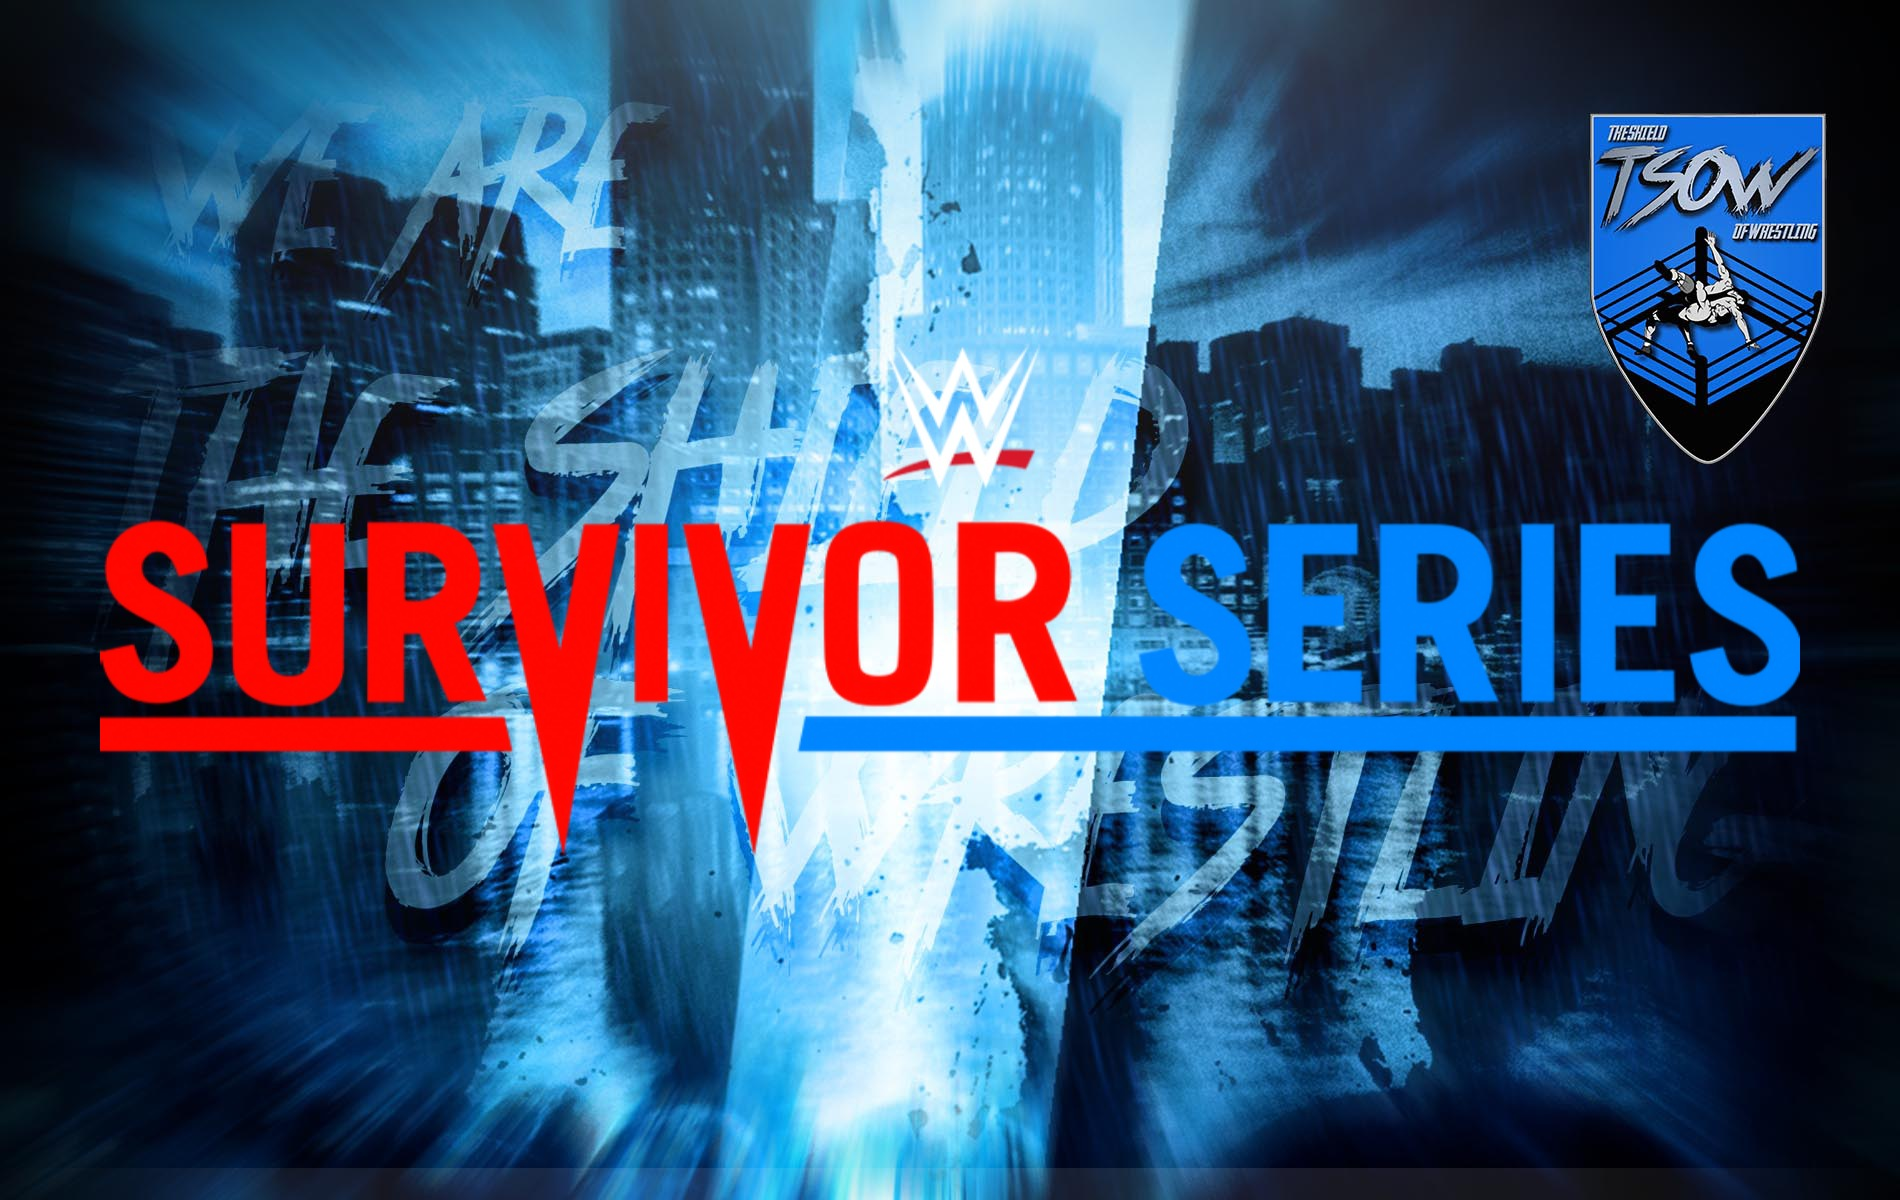 Survivor Series: Bobby Lashley umilierà Sami Zayn vincendo in pochi minuti?